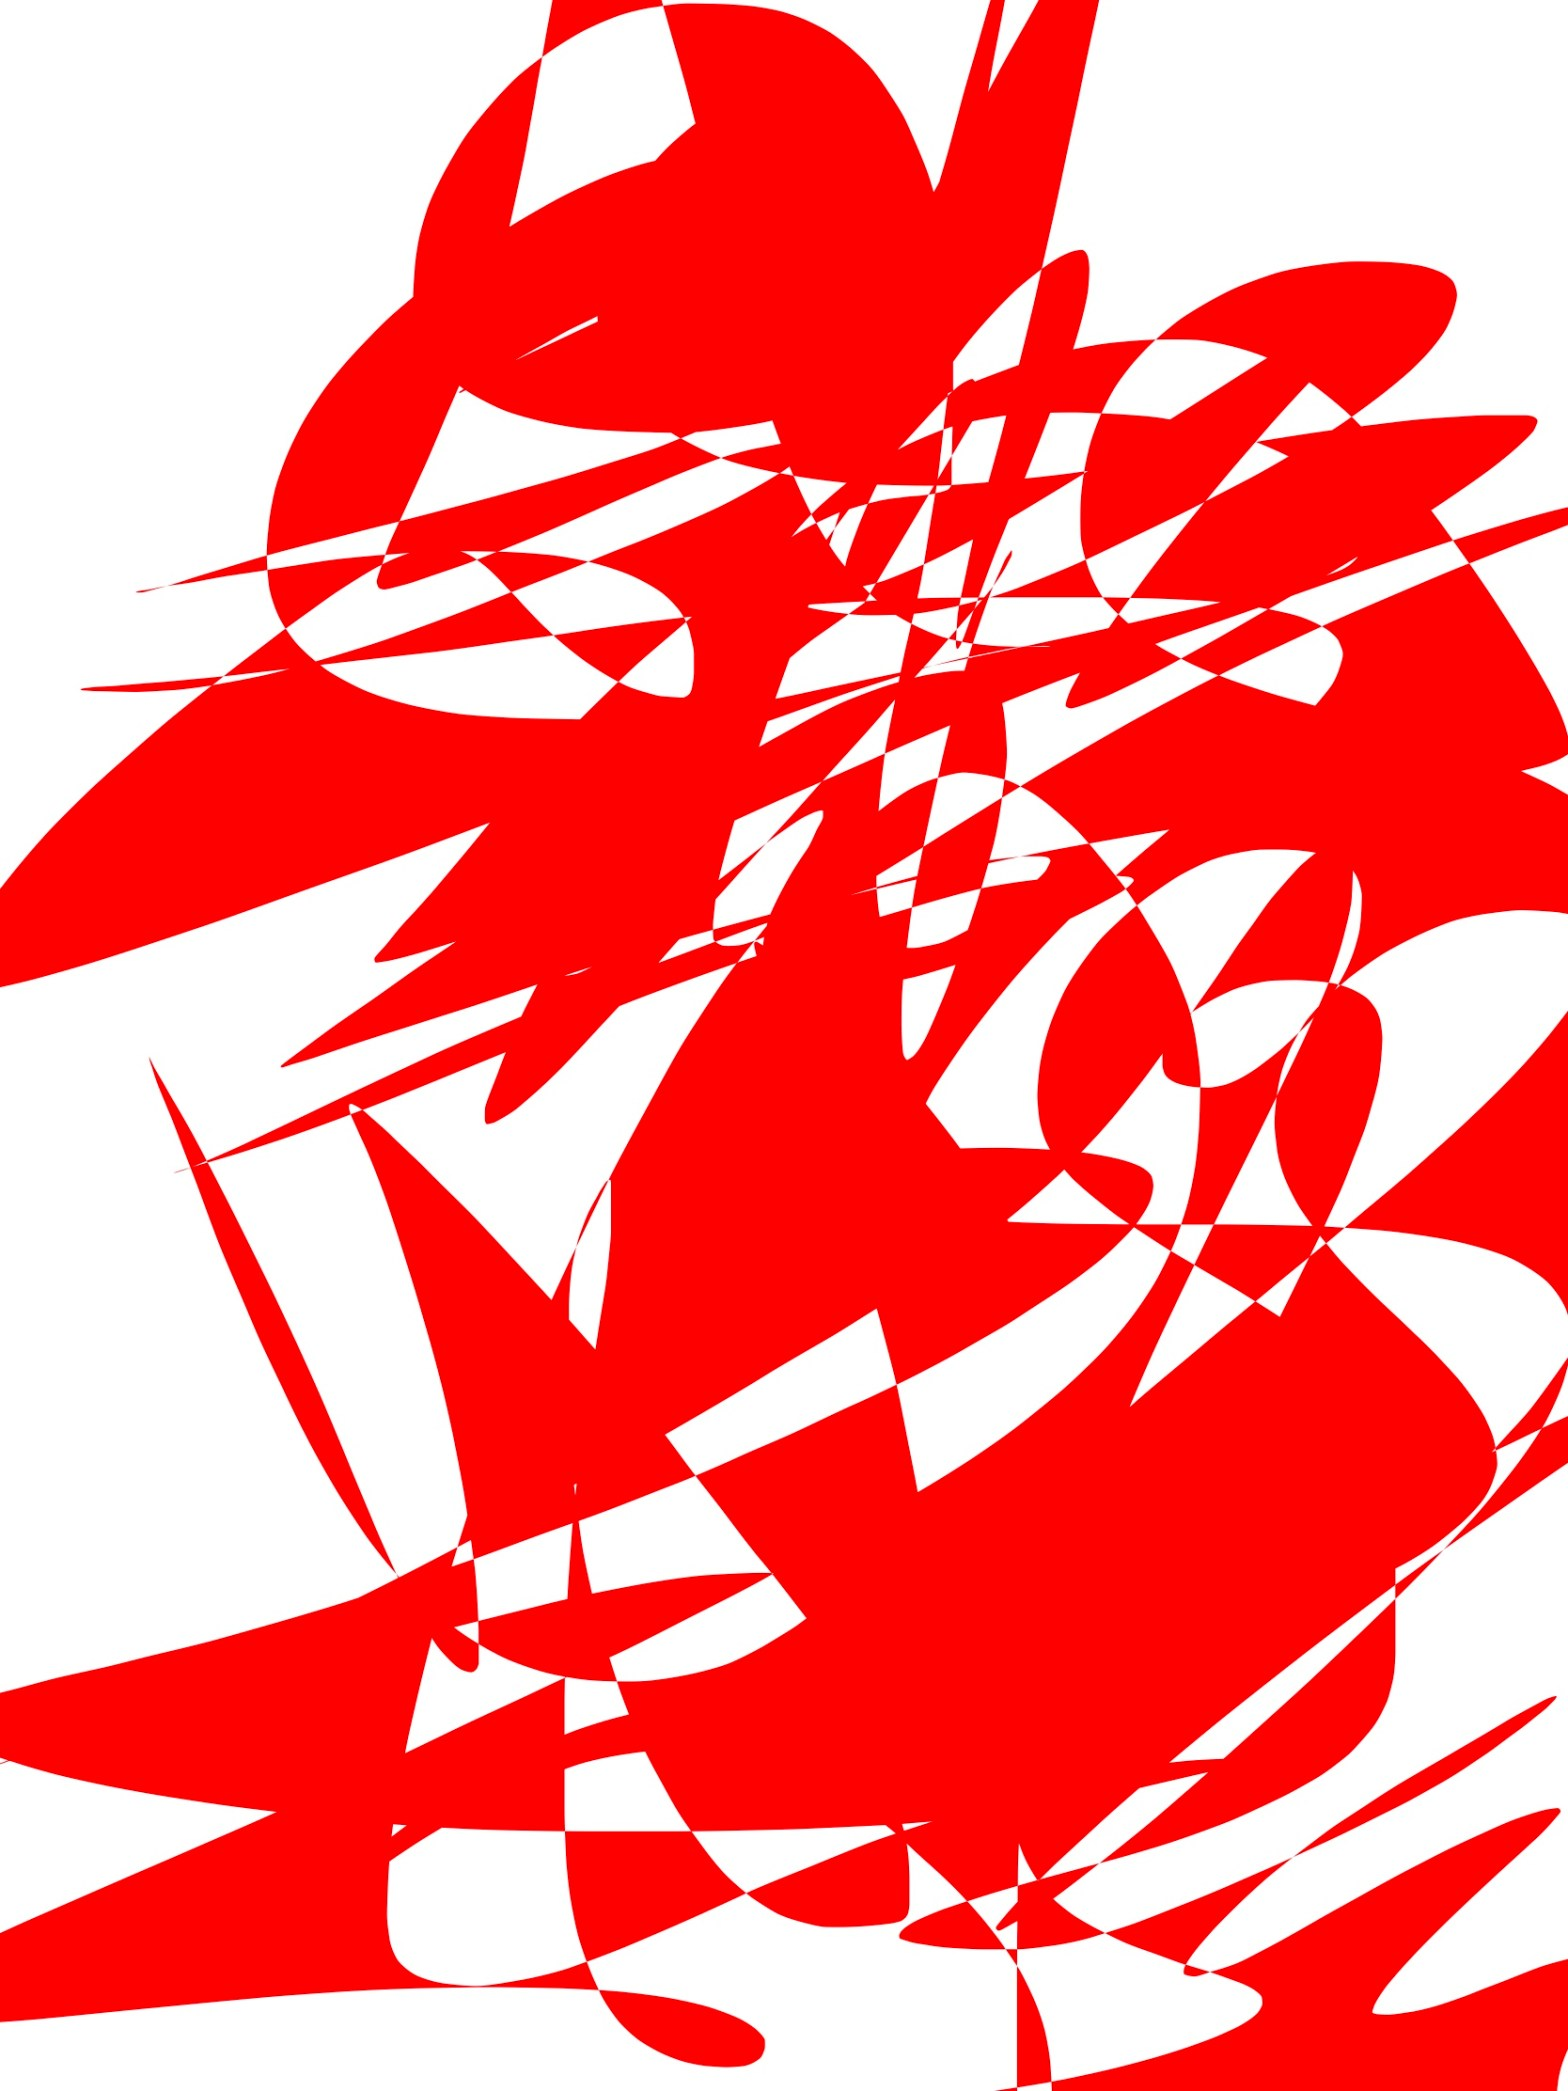 Red white abstract